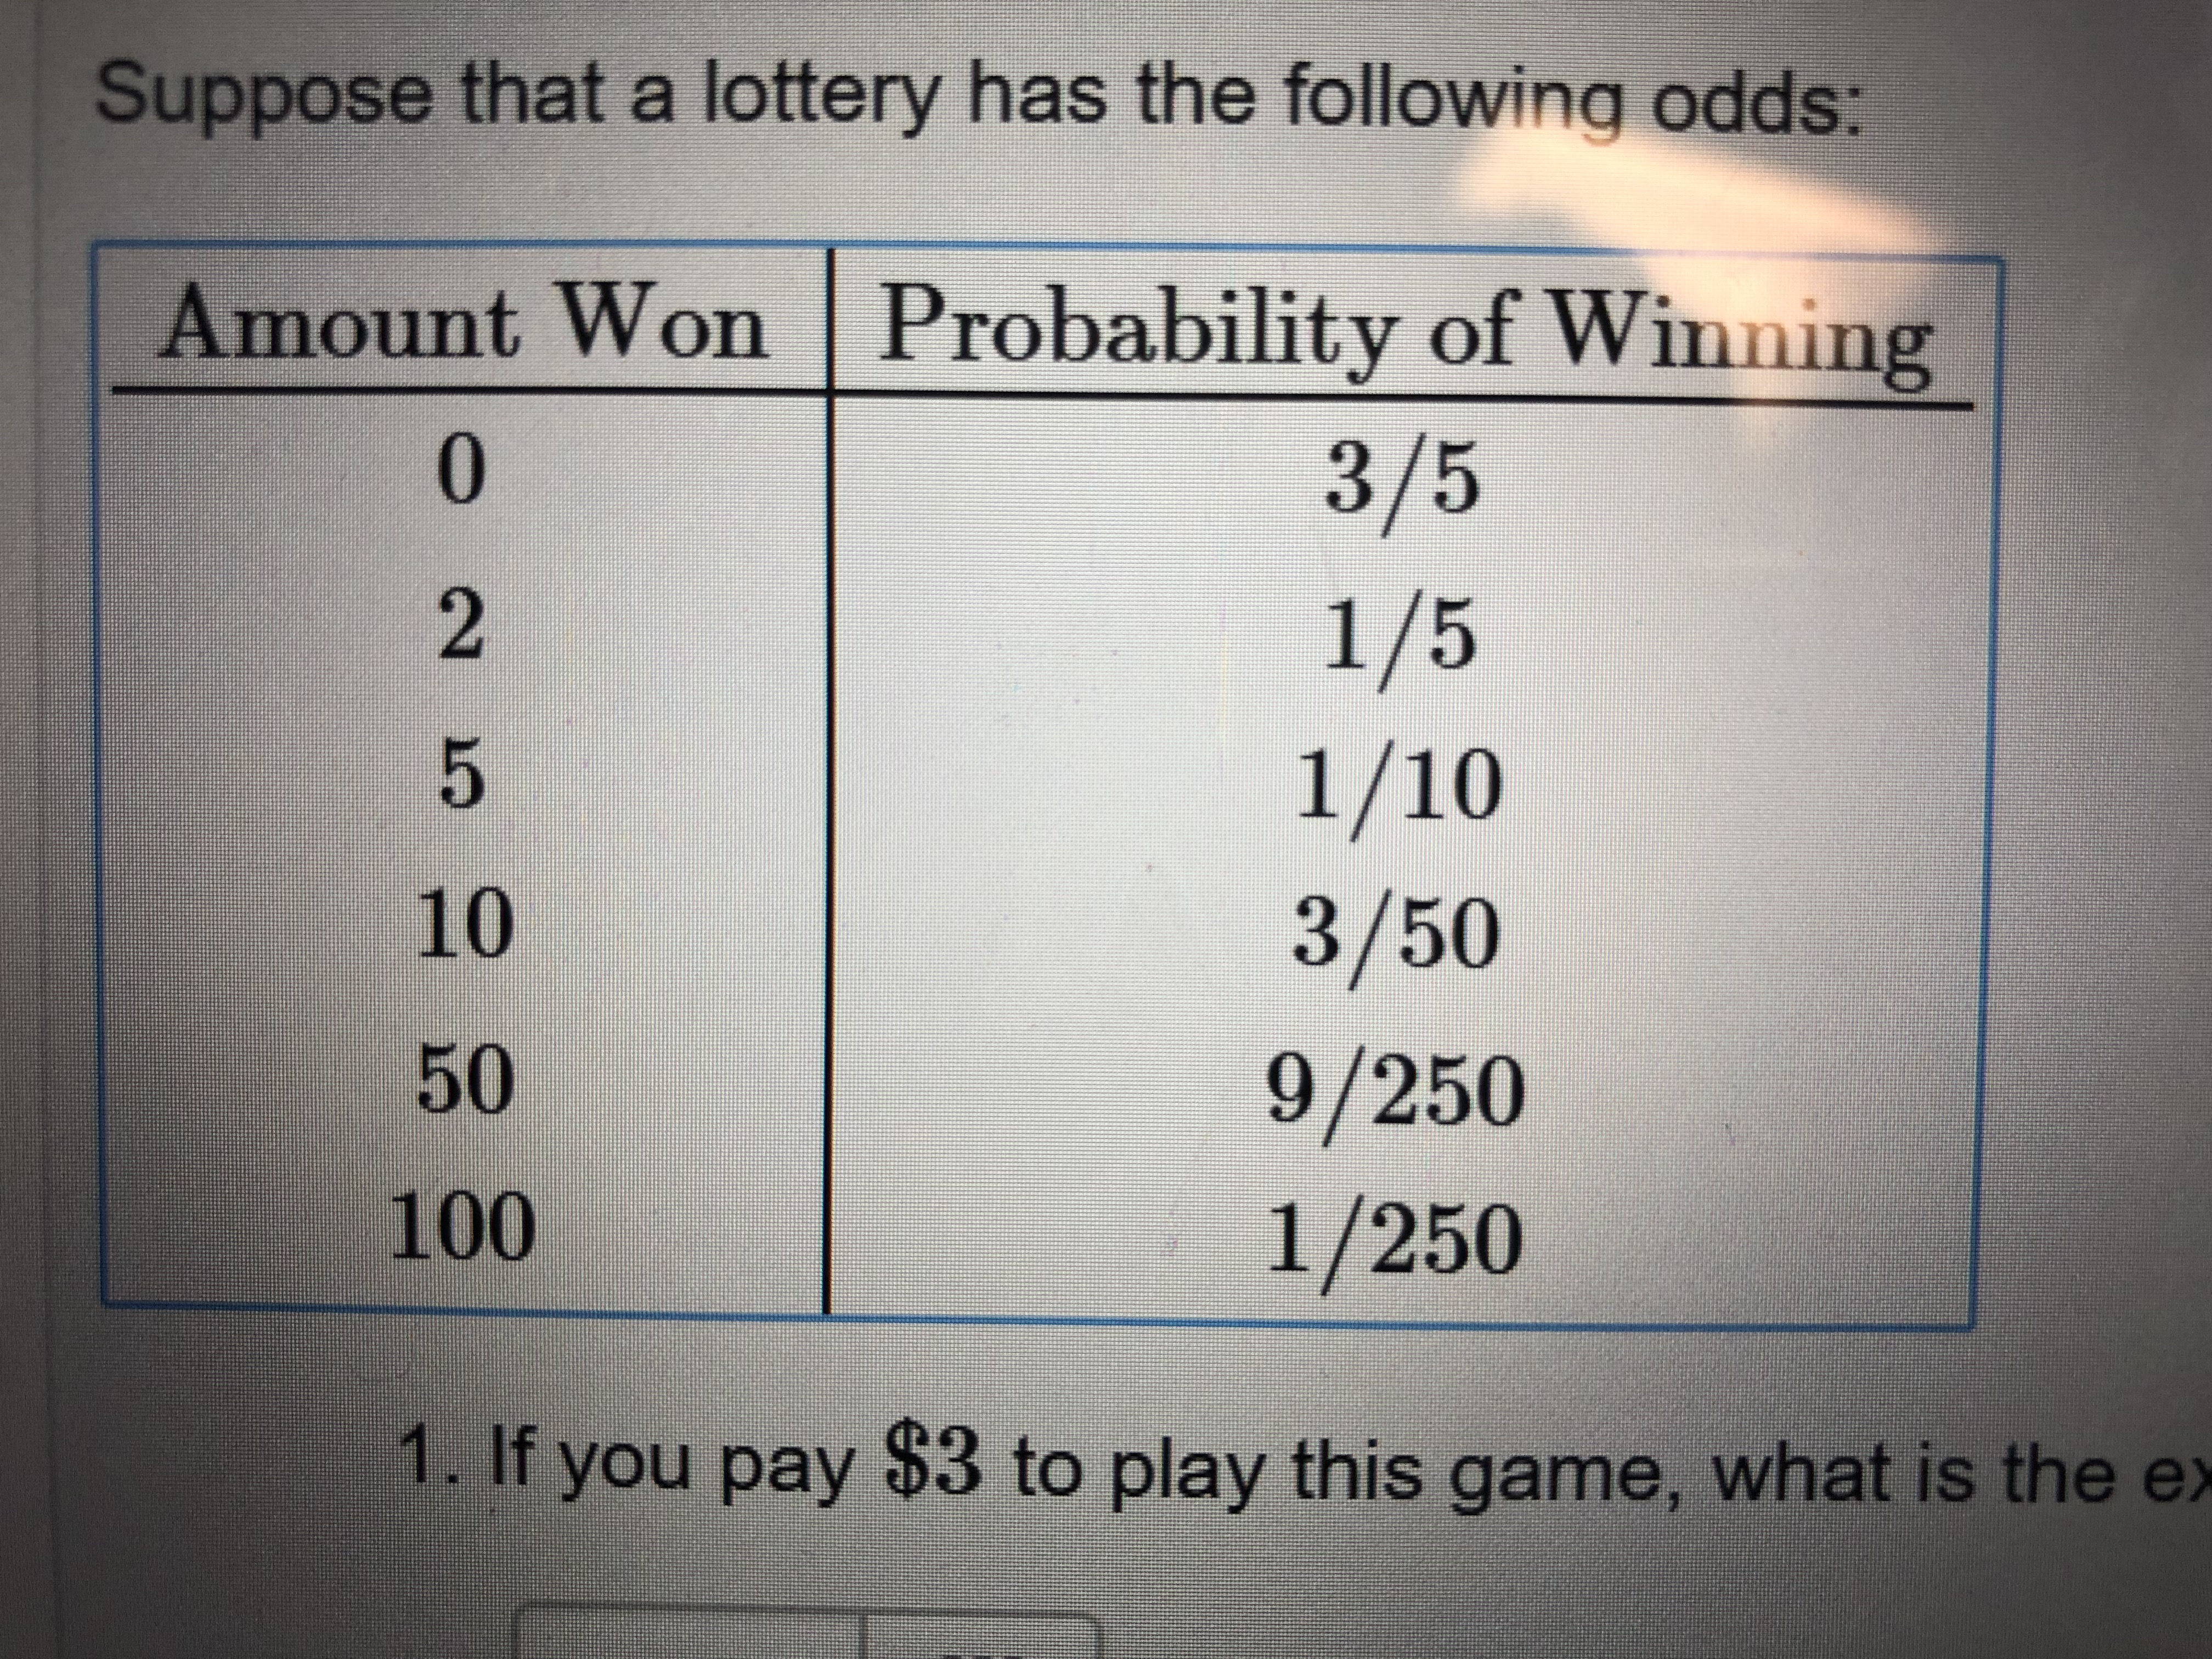 Suppose thata lottery has the following odds: Amount Won Probability of Winning 0 3/5 2 1/5 1/10 5 10 3/50 50 9/250 1/250 100 1. If you pay $3 to play this game, what is the ex